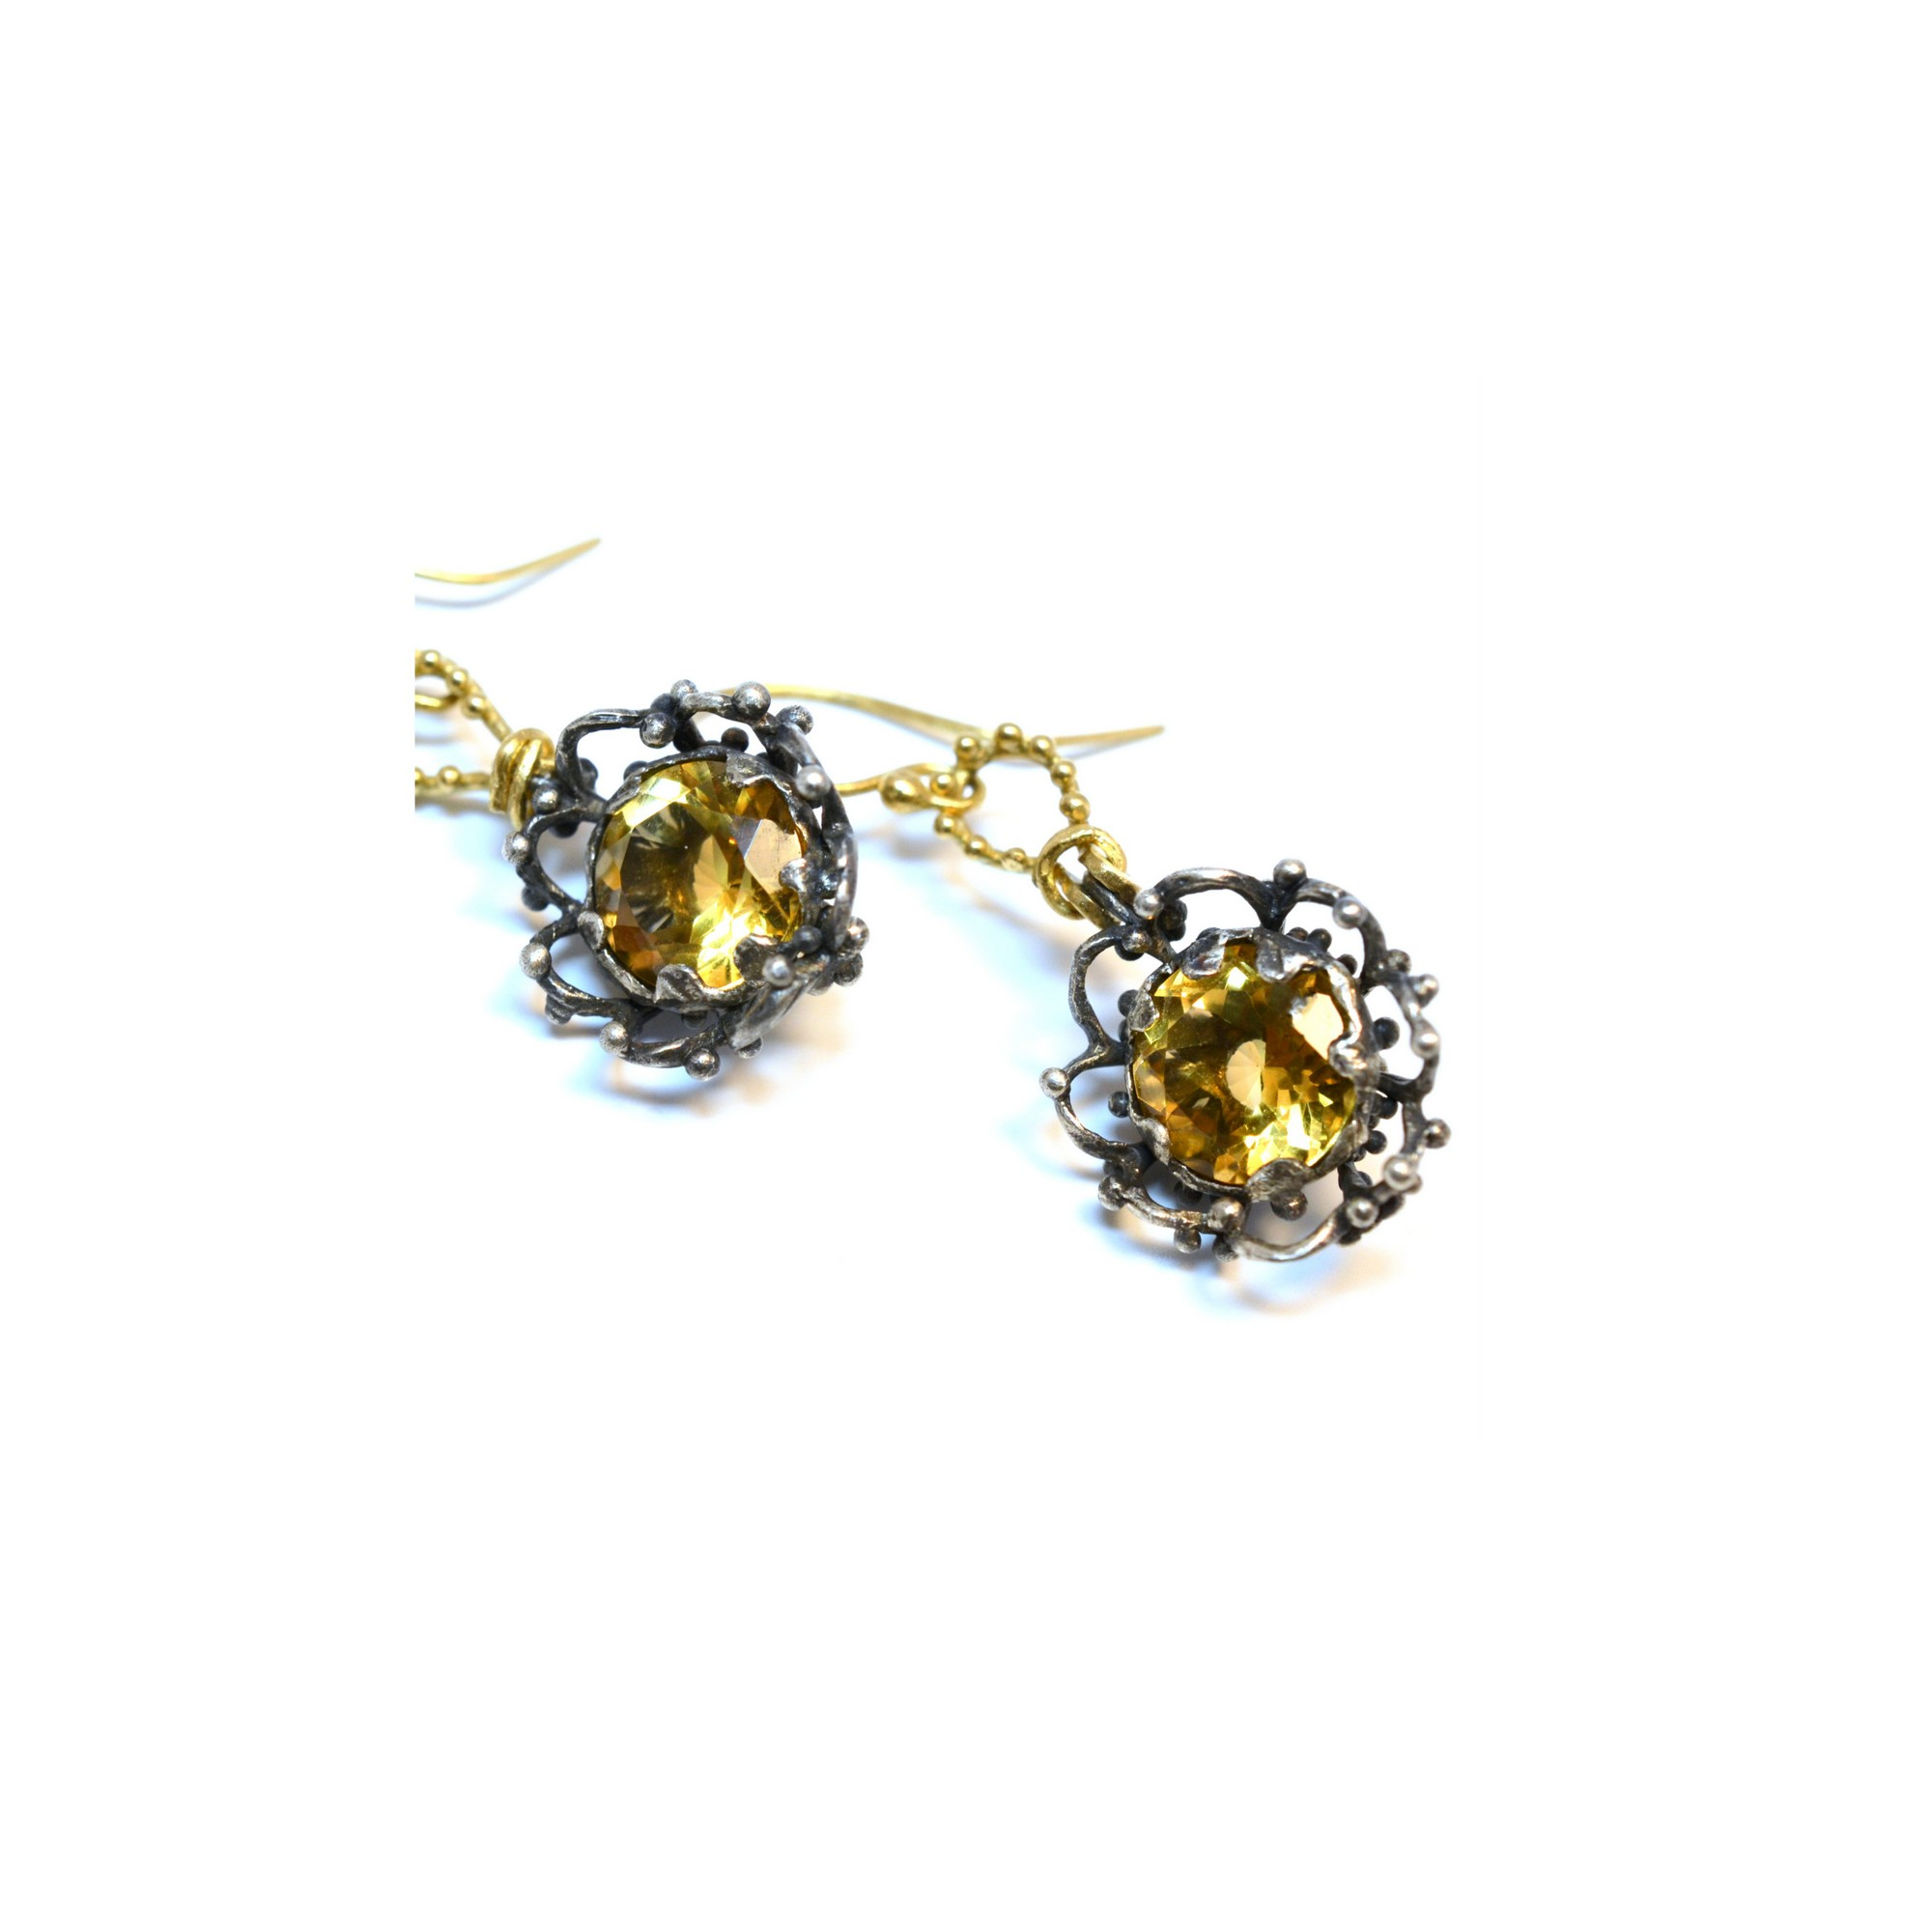 Chiaroscuro Earrings